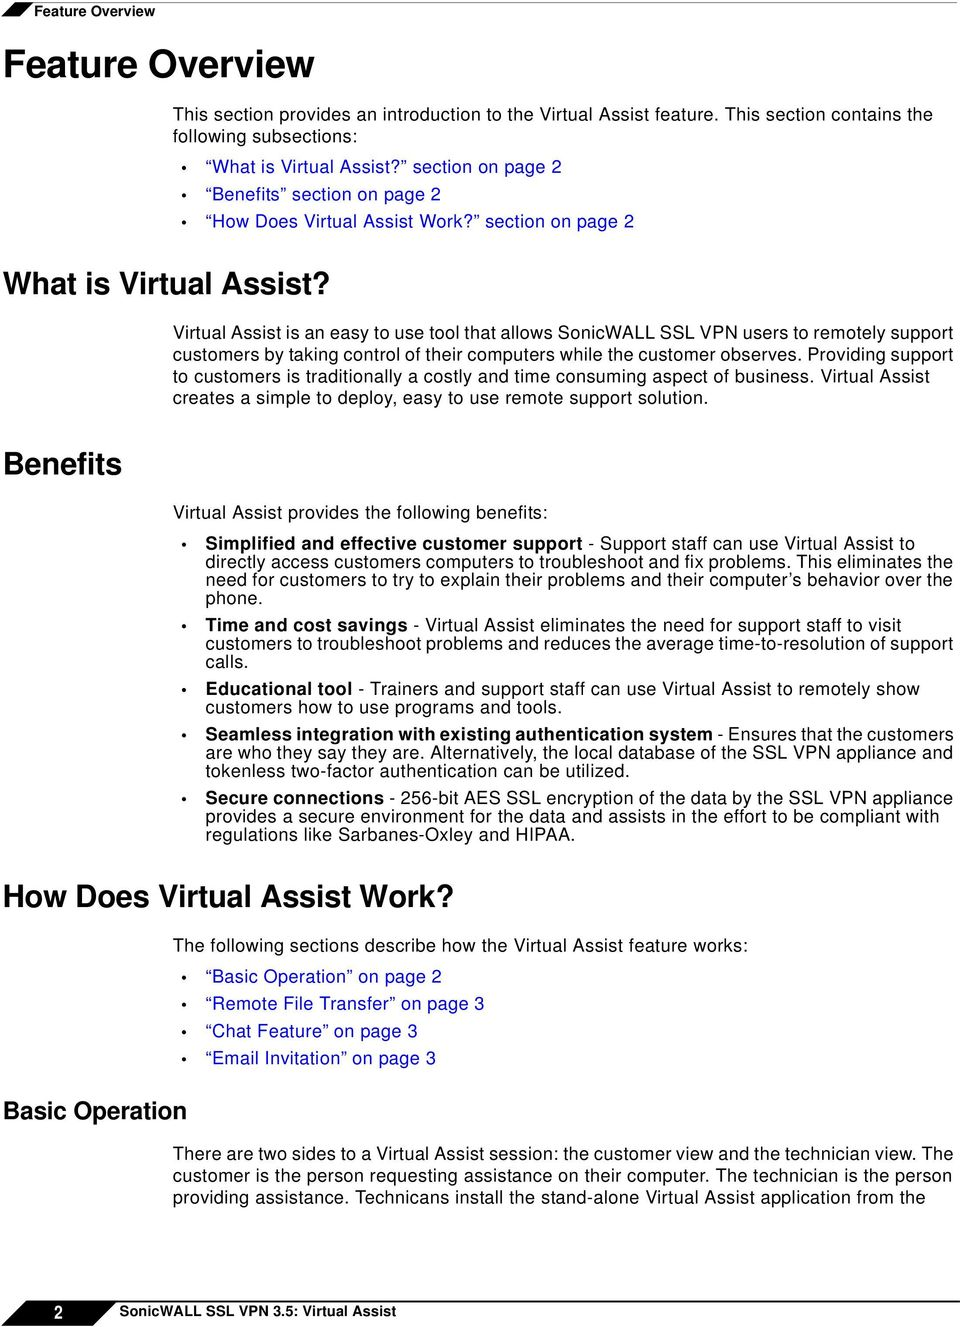 Virtual Assist is an easy to use tool that allows SonicWALL SSL VPN users to remotely support customers by taking control of their computers while the customer observes.